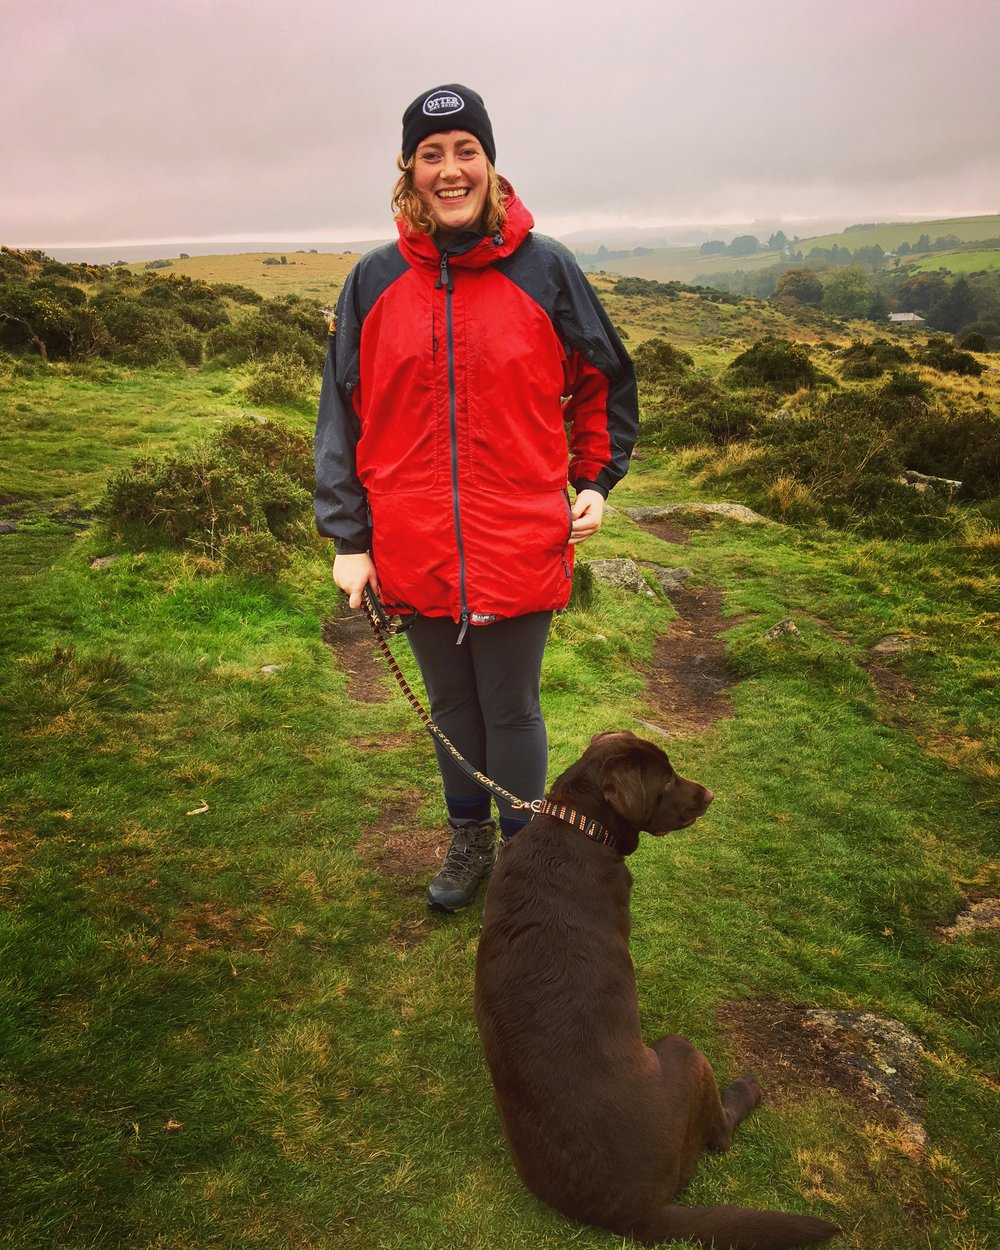 The dog and I marching in the rain!